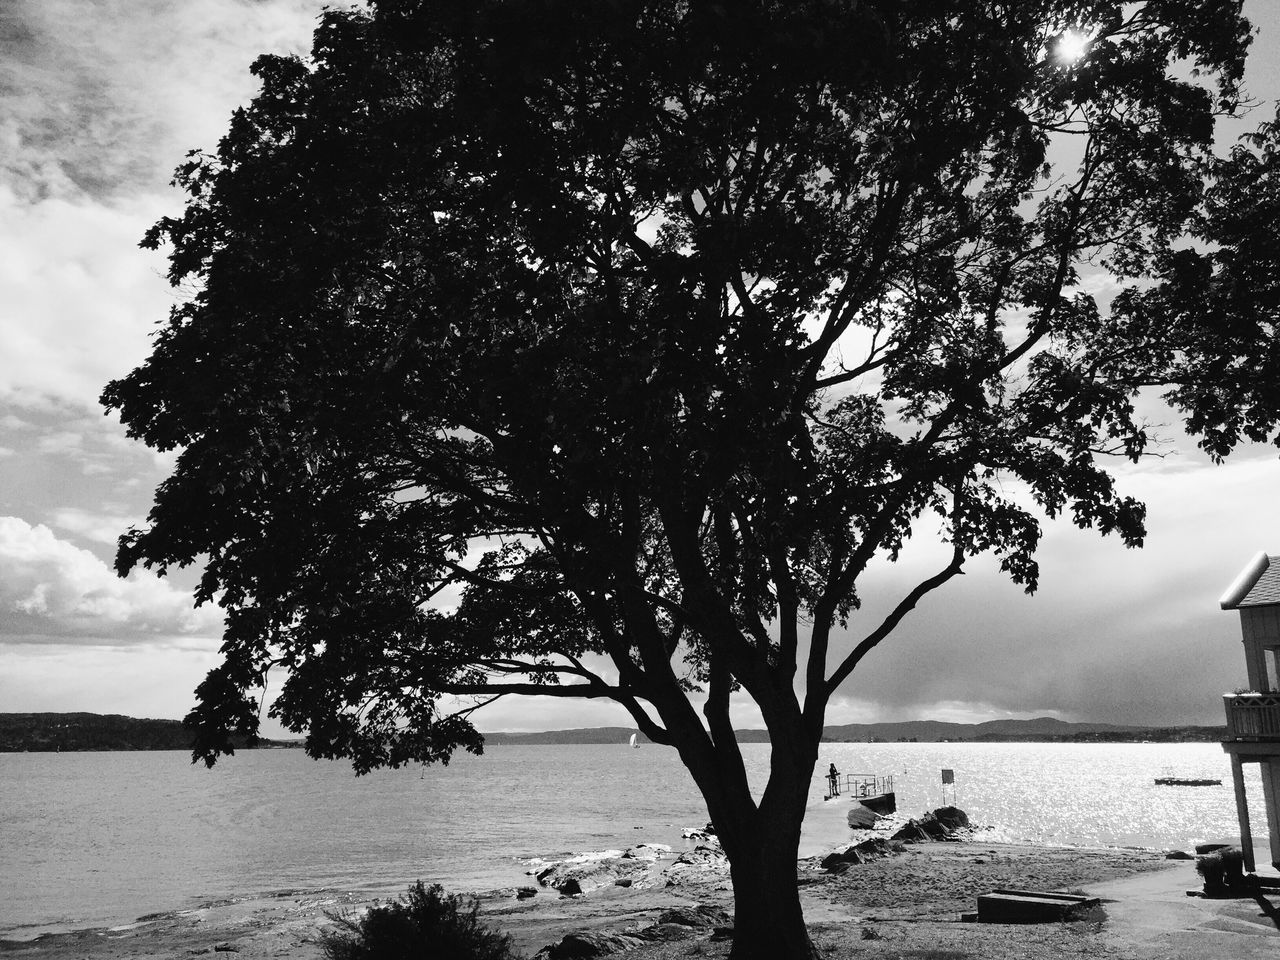 tree, water, sea, nature, tranquility, sky, tranquil scene, beauty in nature, scenics, outdoors, horizon over water, beach, growth, day, no people